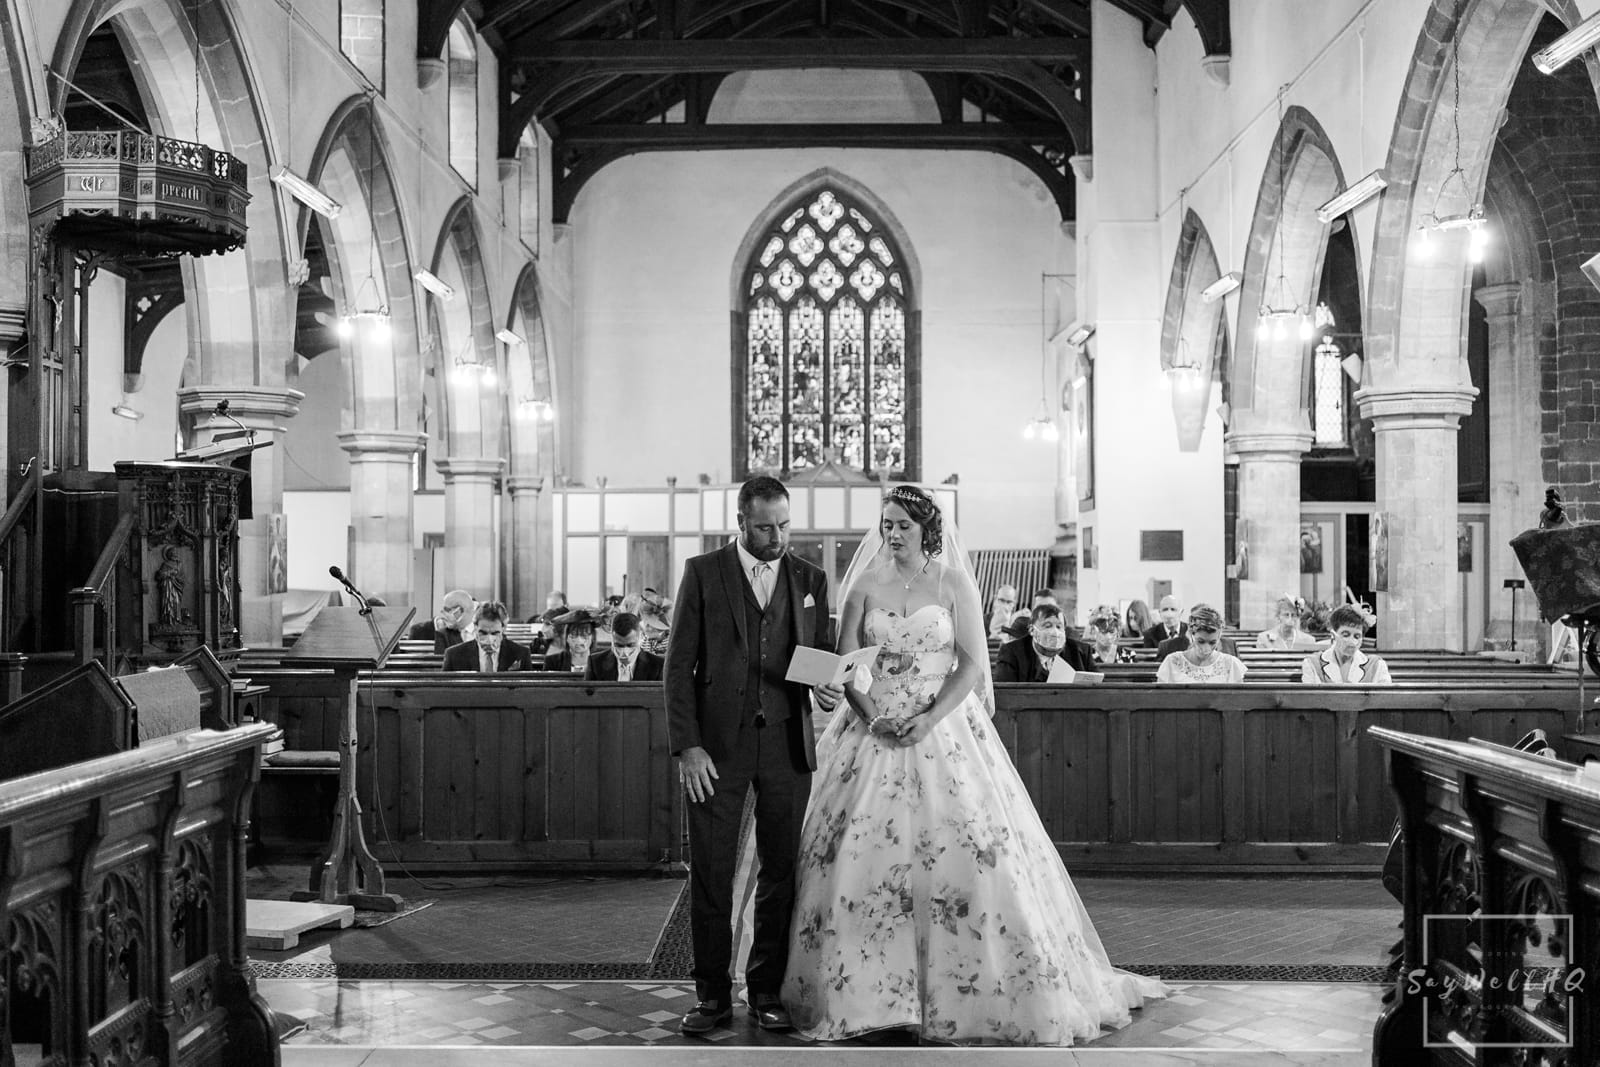 Lincoln Wedding Photography + Spilsby Church Wedding Photographer + Bride and groom sing during their wedding ceremony